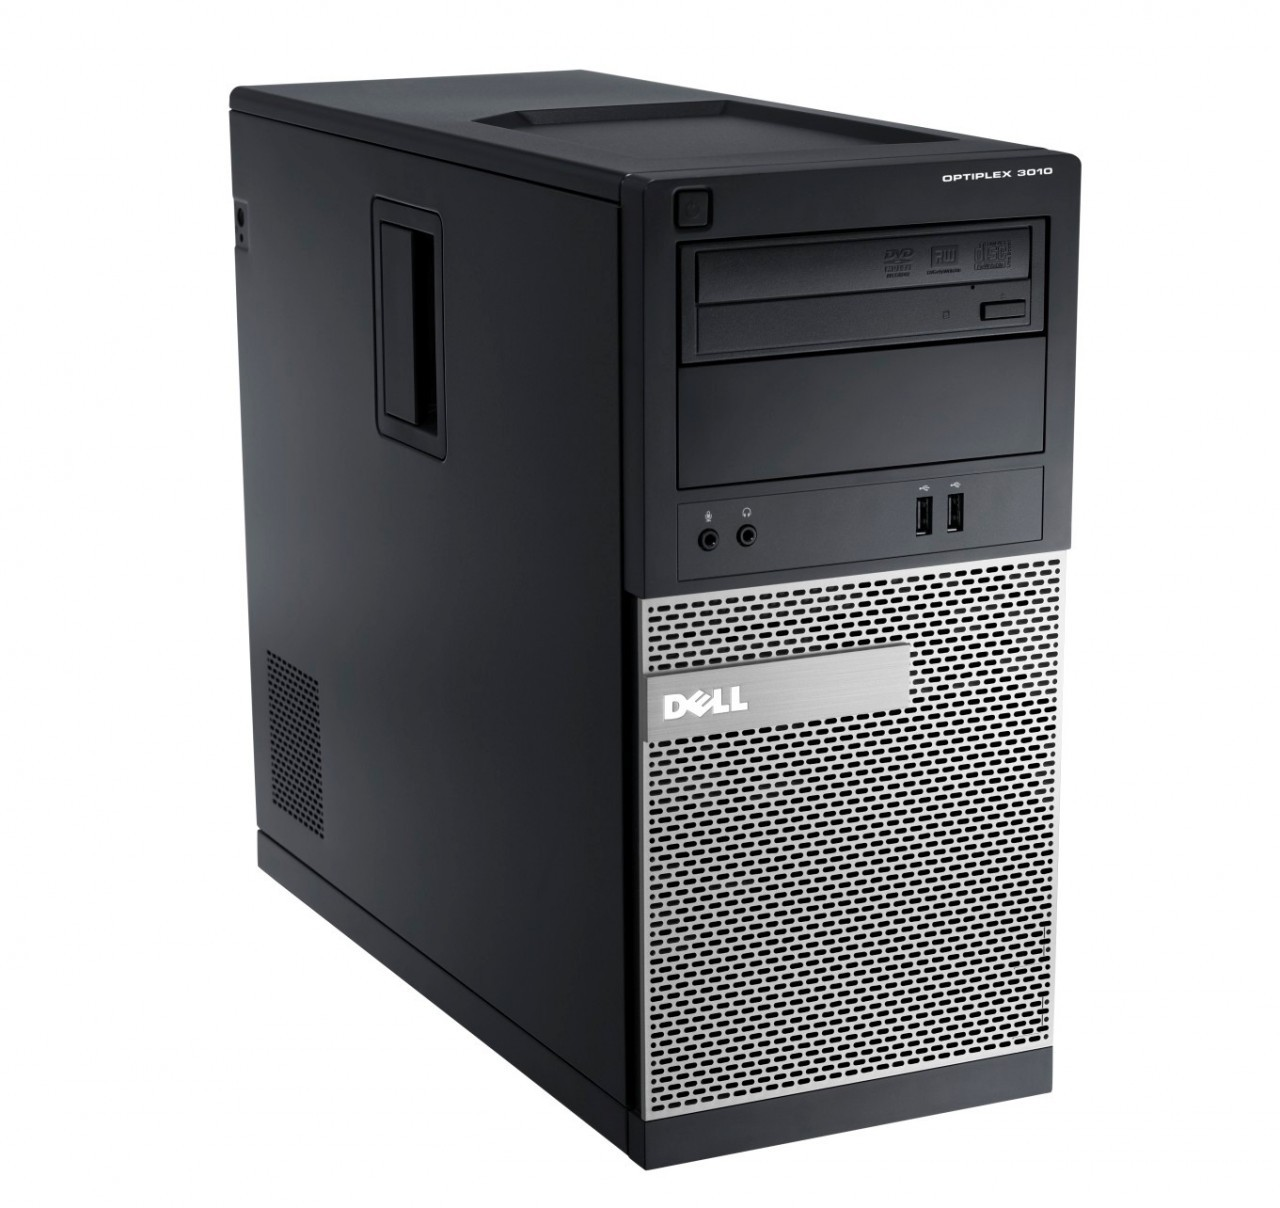 DELL Optiplex 3010 MT Minitower Core I3-3220 3.3 Ghz 4GB 250GB DVD/RW Win7 Pro - D1704183